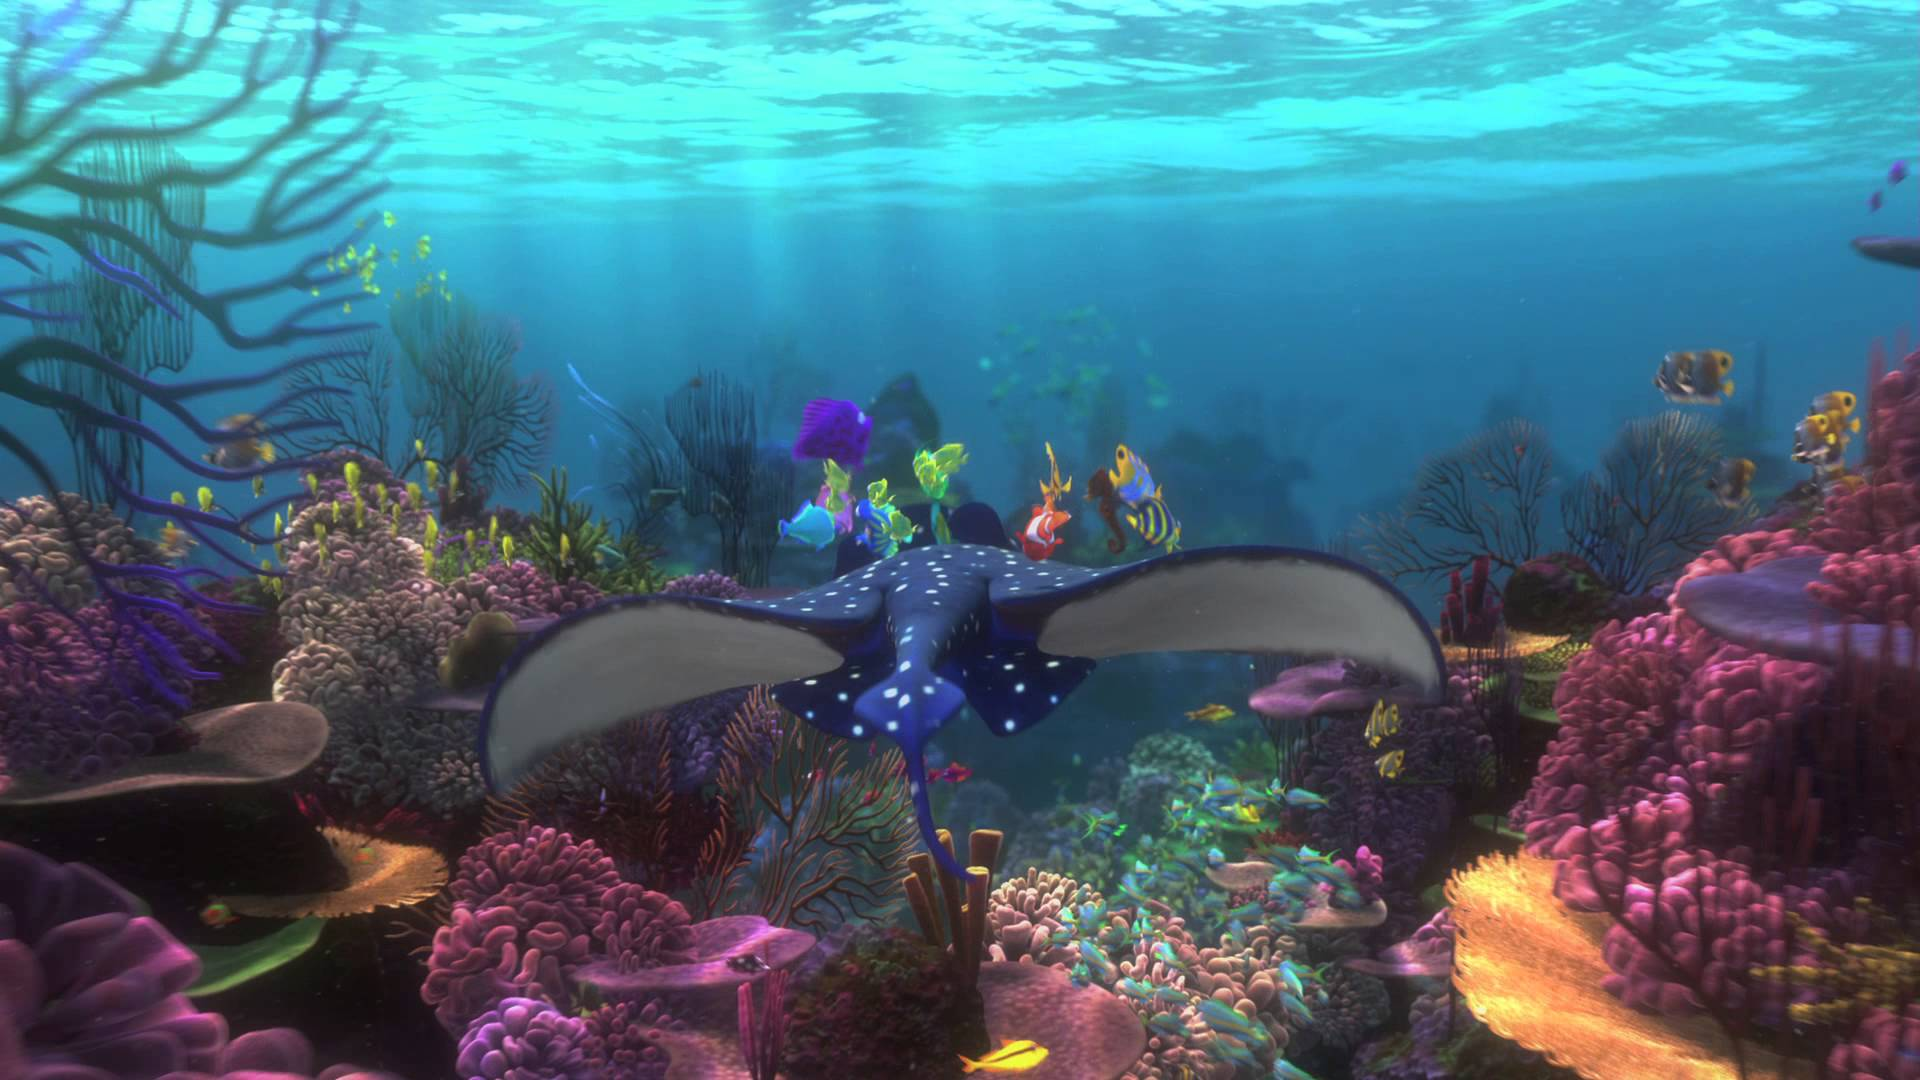 3d Wallpaper Live Fish Finding Nemo Backgrounds Wallpaper Cave